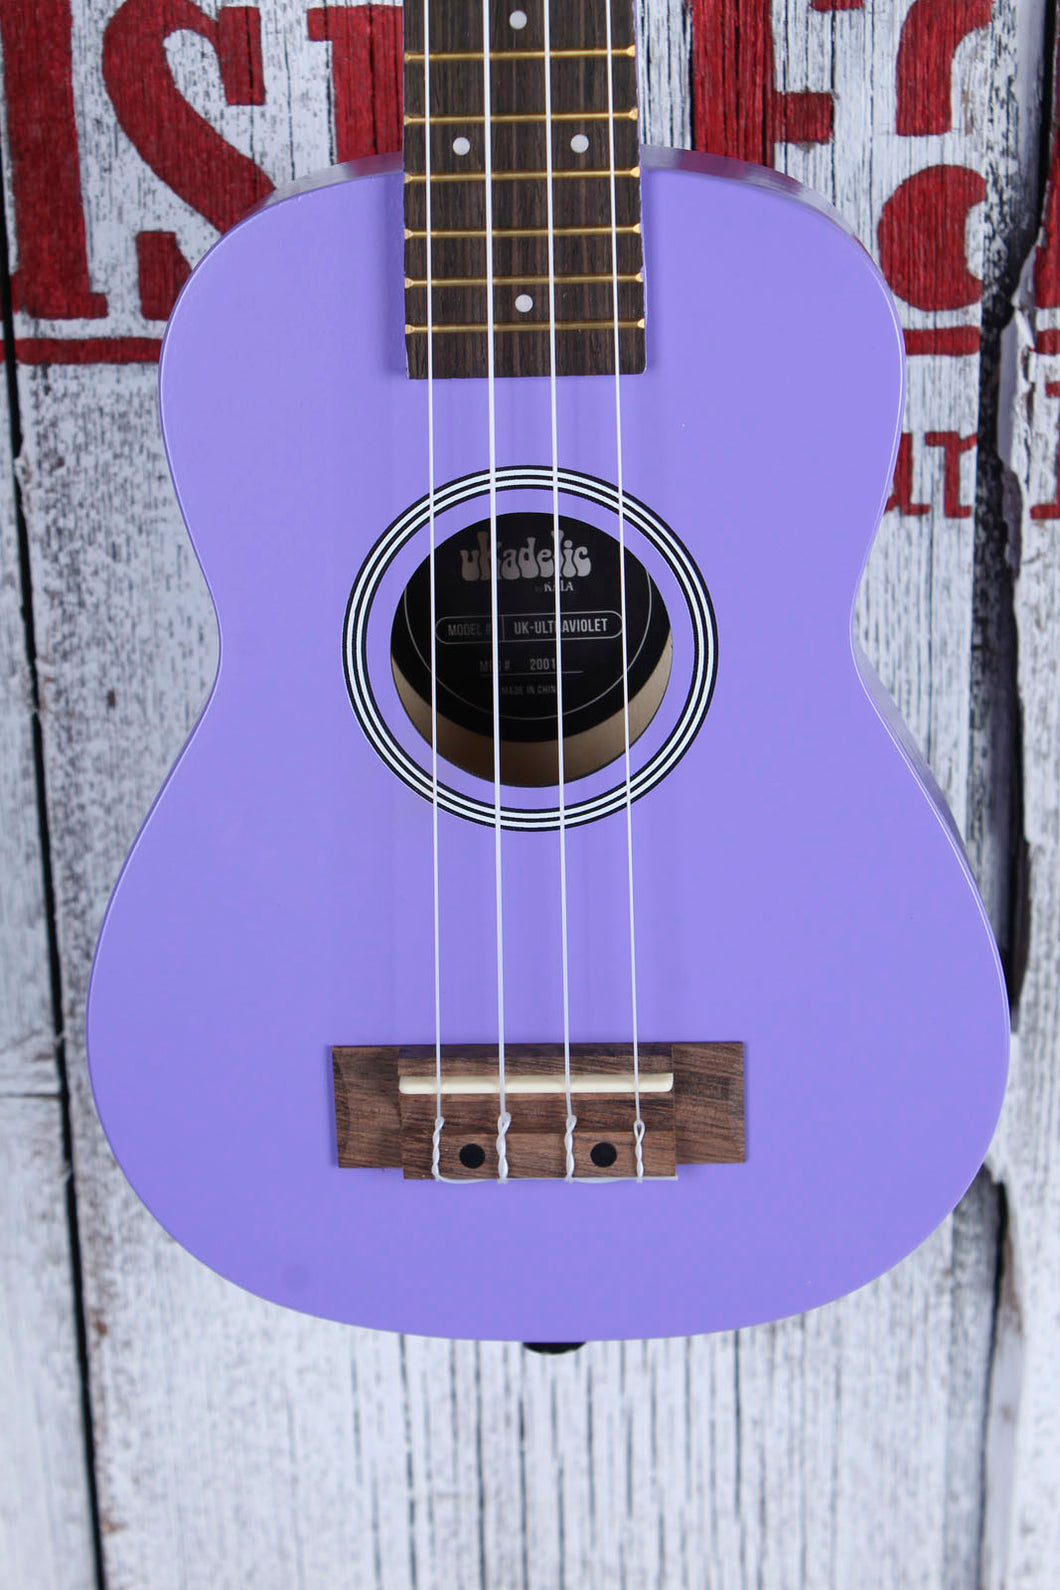 Kala Ukadelic Ultra Violet Soprano Ukulele Wood Uke UK-ULTRAVIOLET with Tote Bag